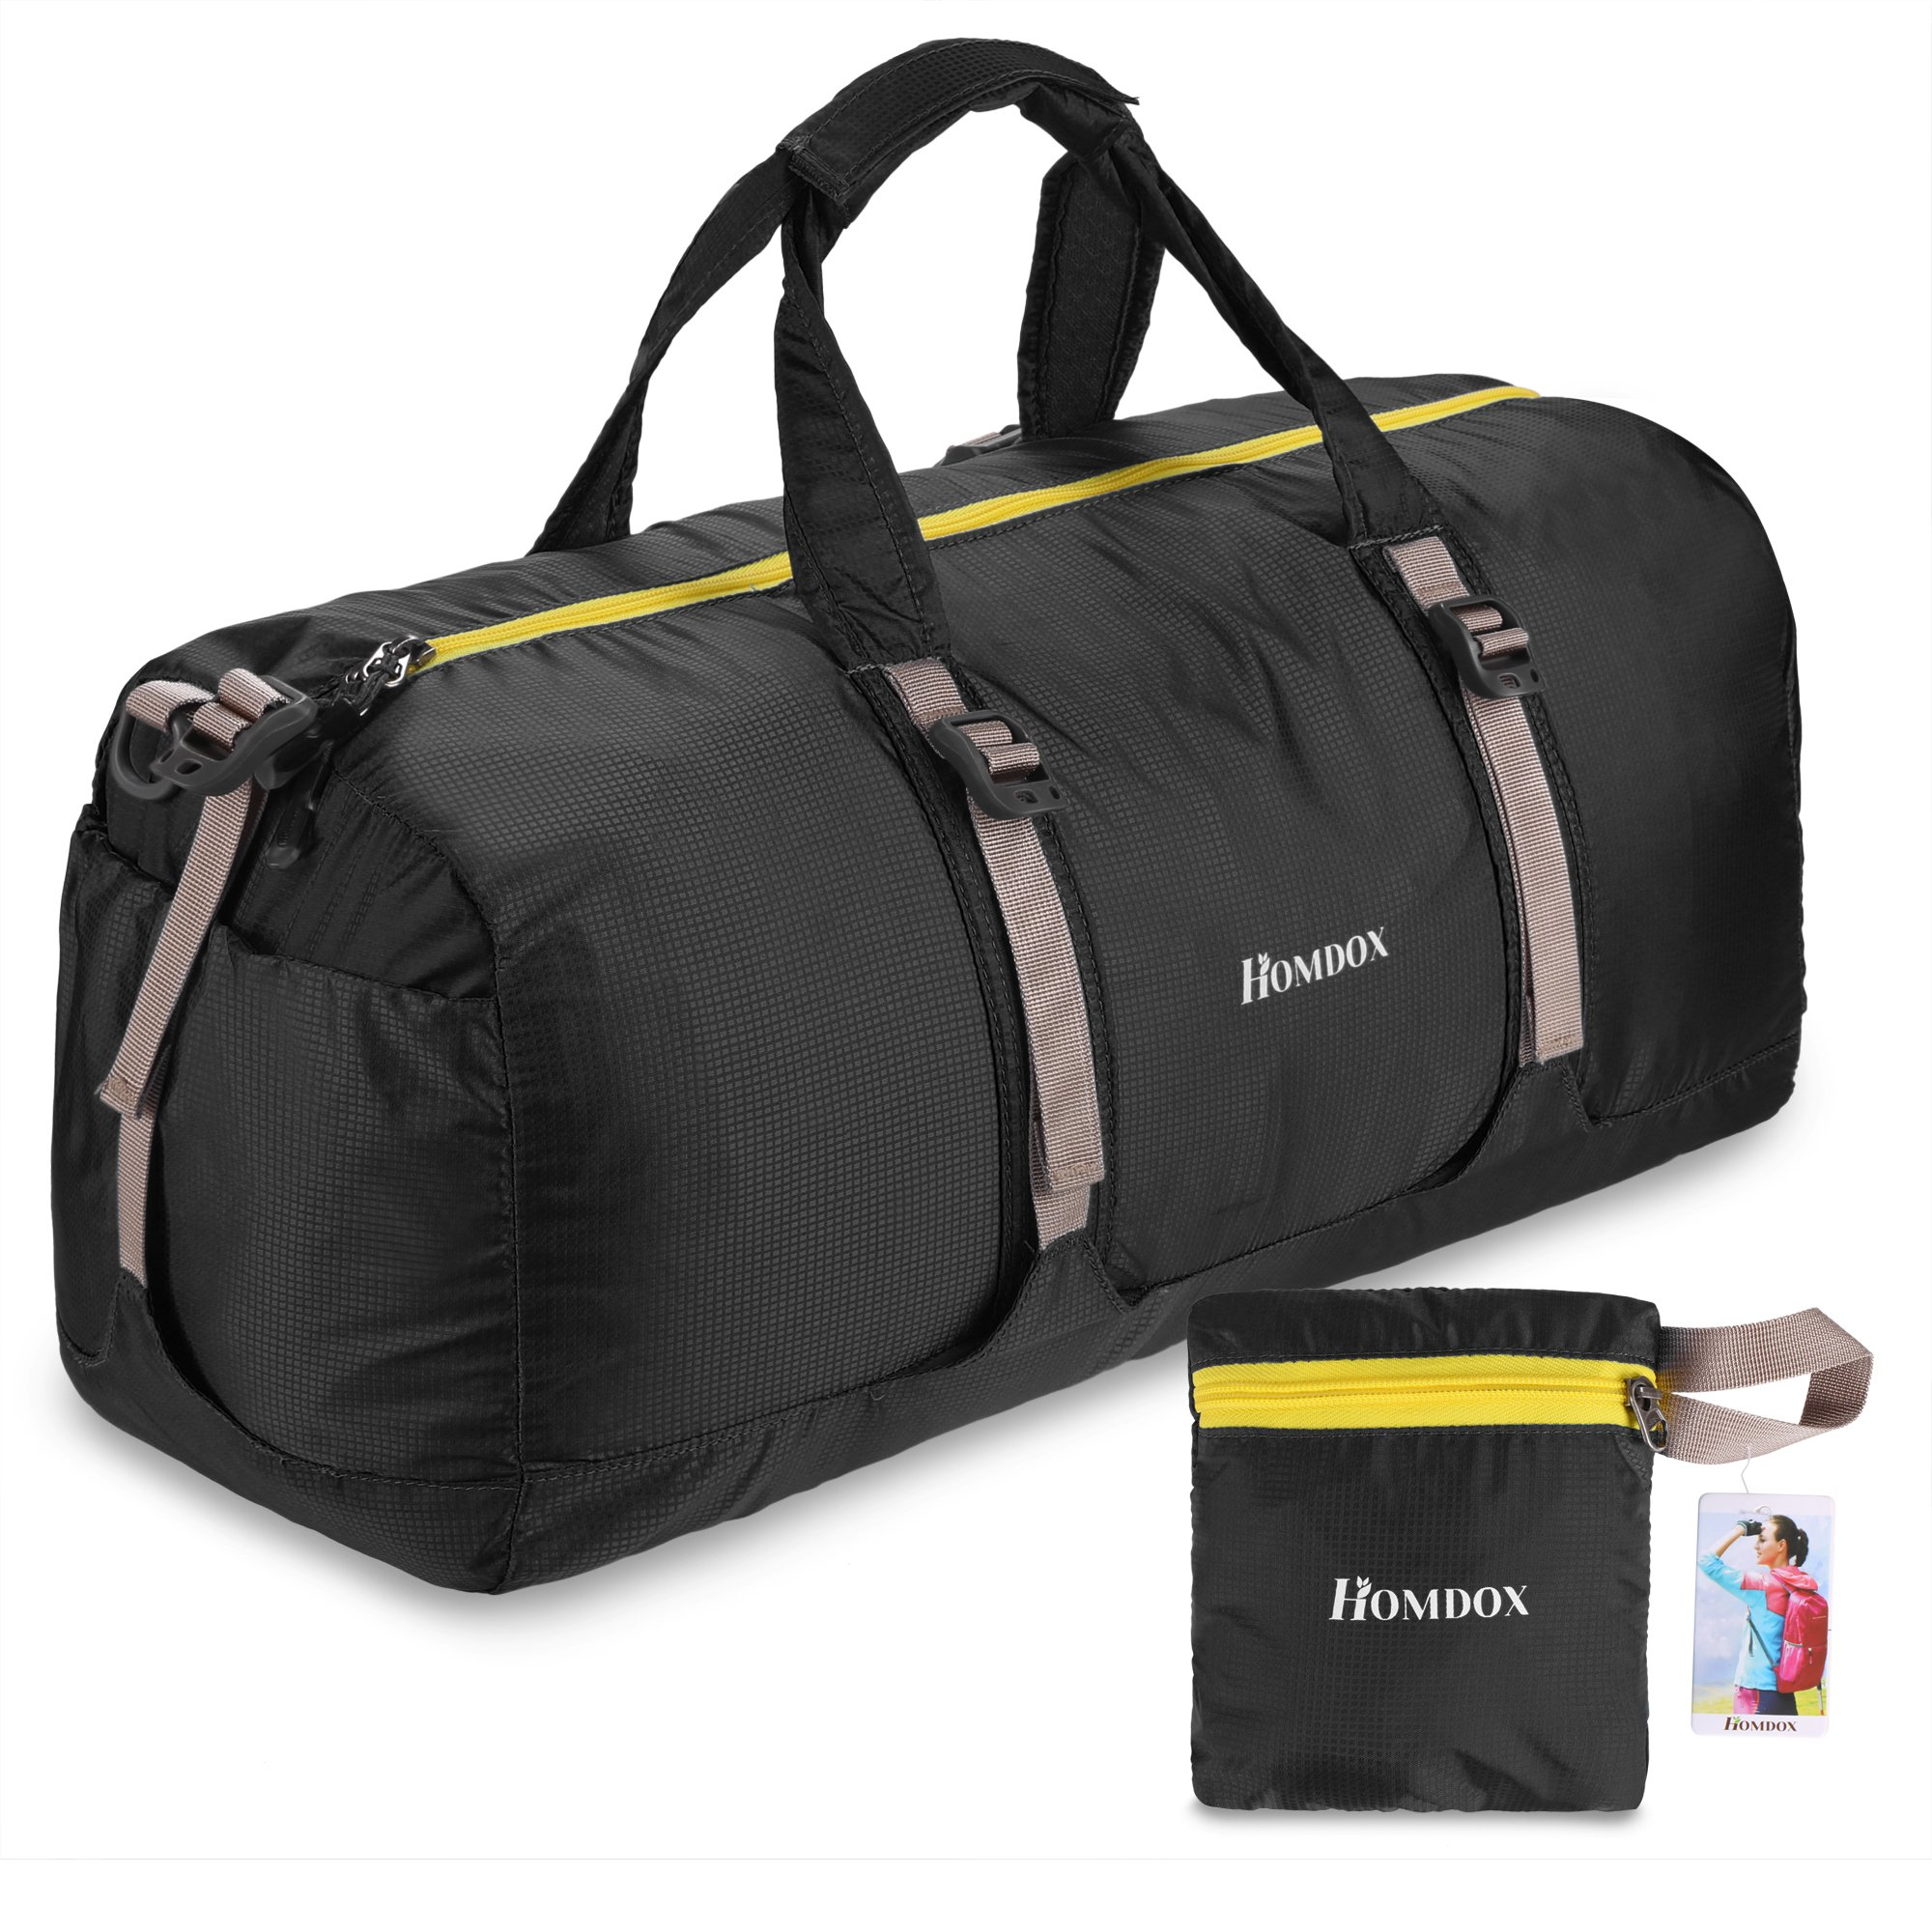 ebf37d8f0af8 Get Quotations · Homdox 40L Foldable Duffle Bag for Gym or Luggage